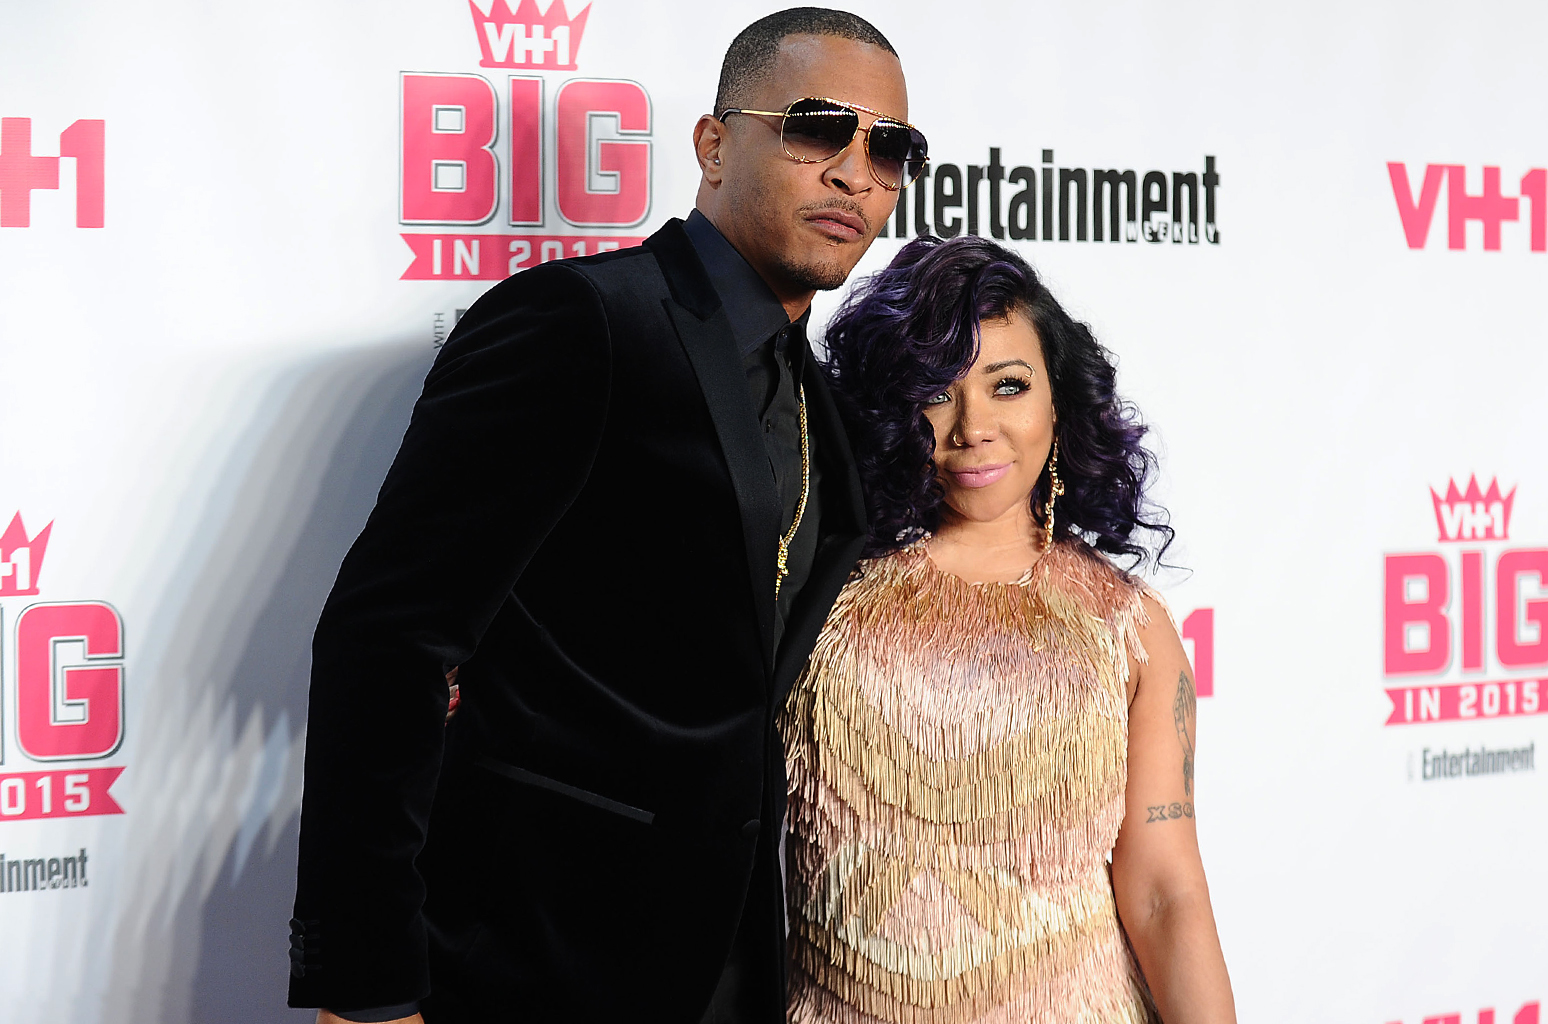 T.I. Has Tiny Harris Laughing Her Heart Out In The Latest Video - Some Fans Wish Tamar & Vince Could Have Fought Like This For Their Own Marriage